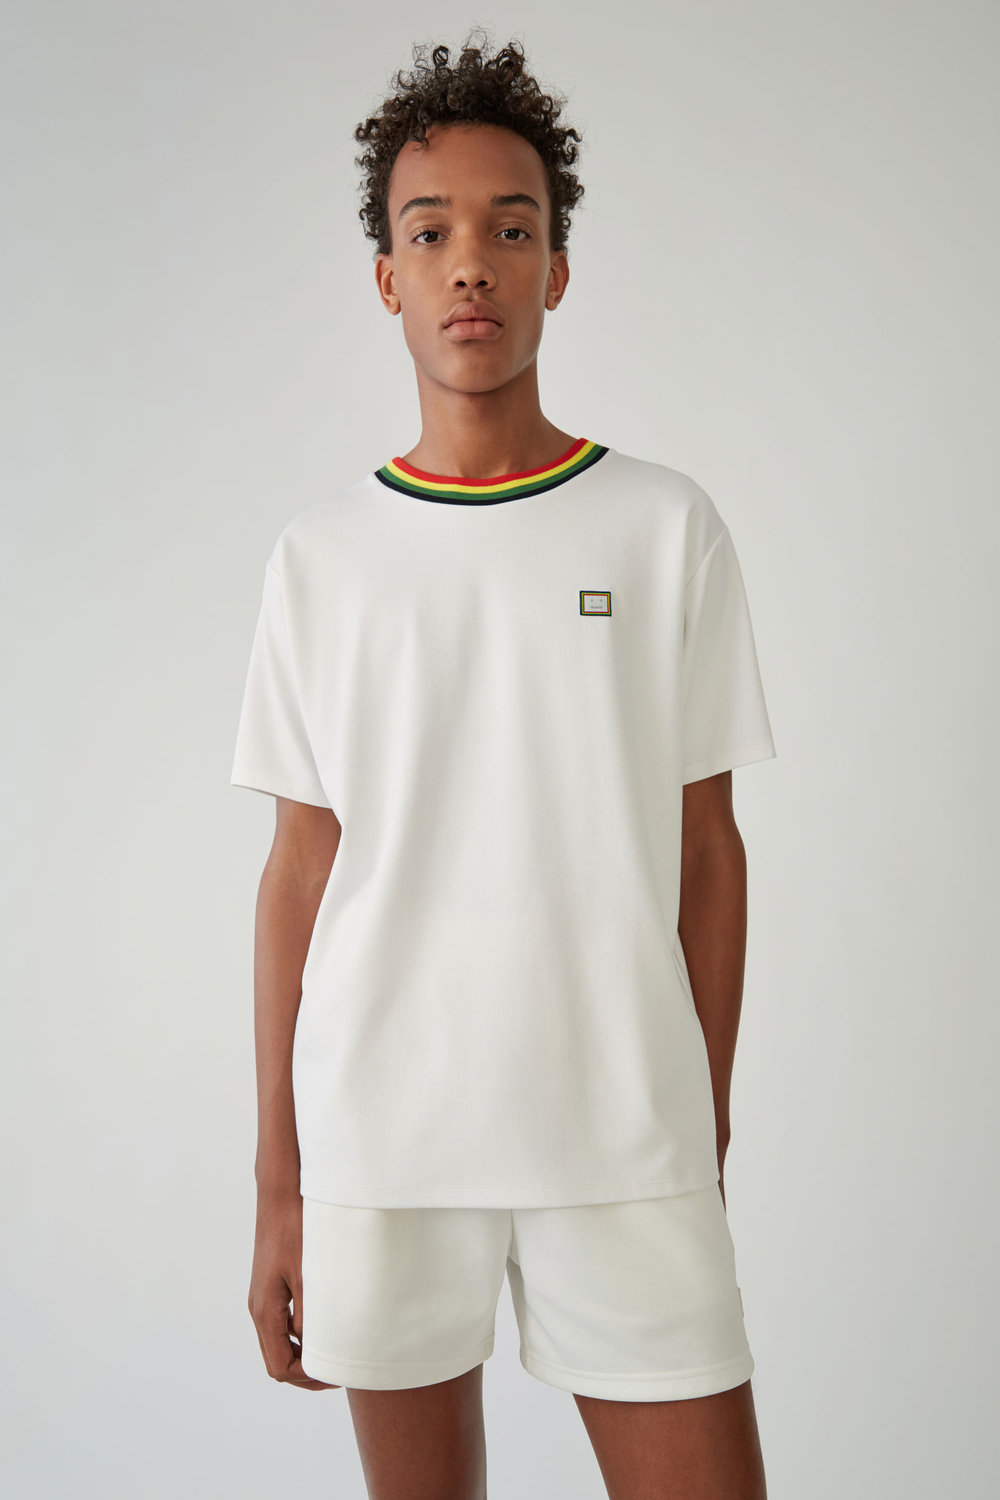 acne studios nash tee white